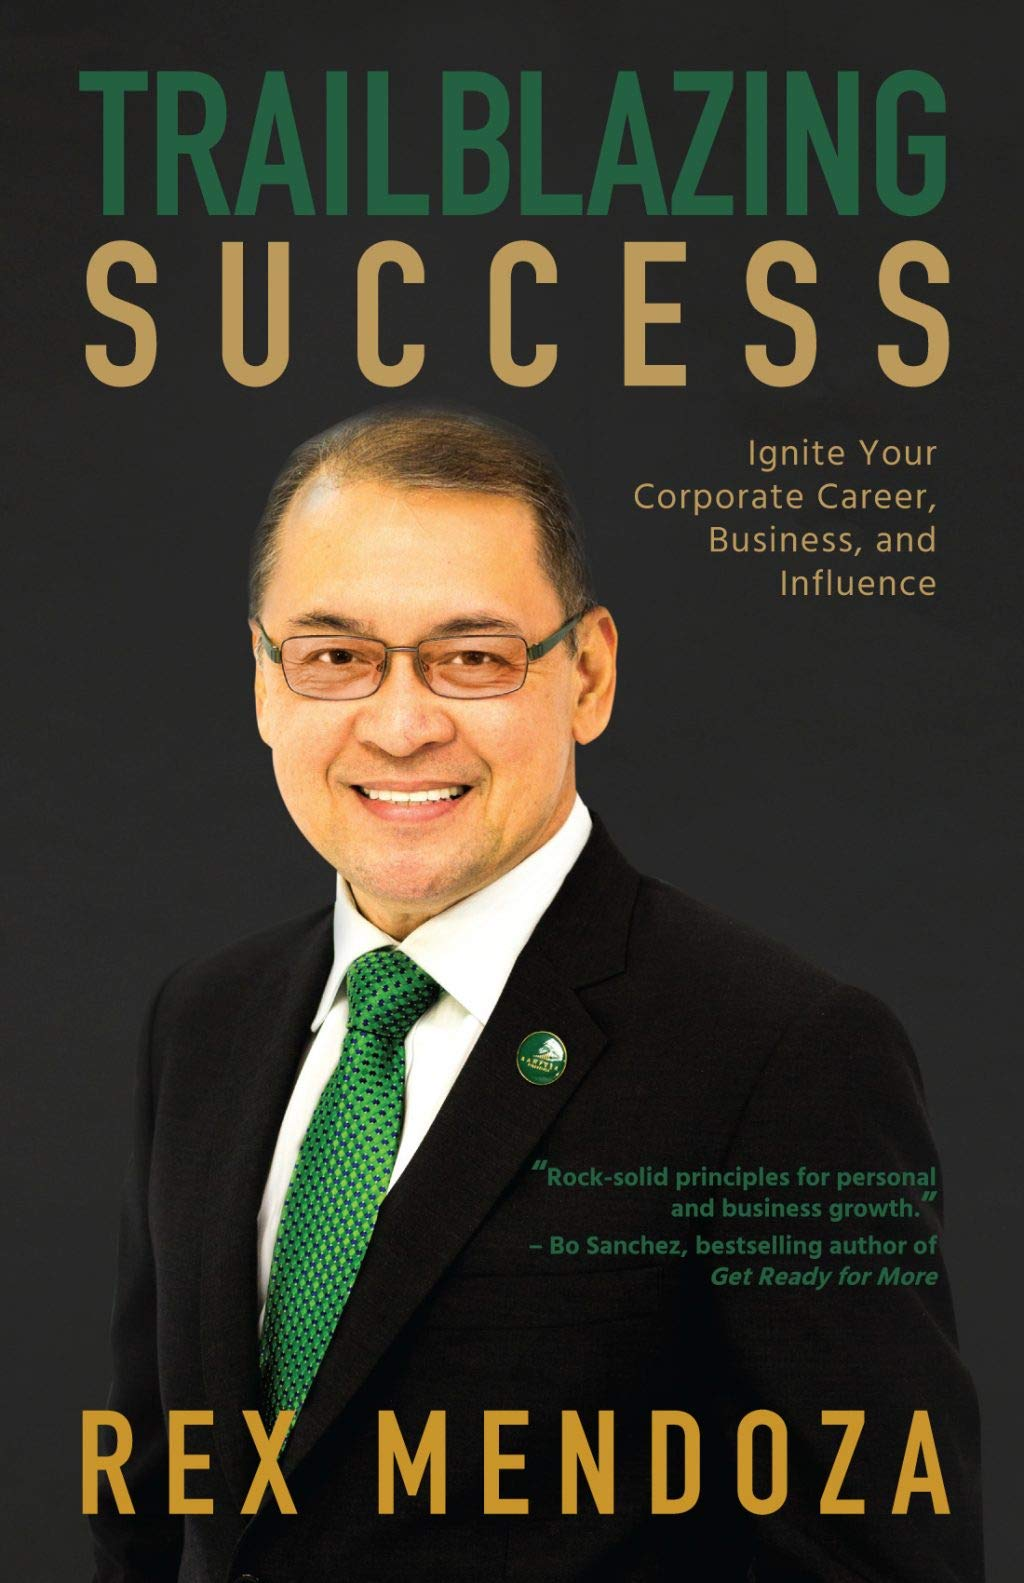 Trailblazing Success: Ignite Your Corporate Career, Business, and Influence